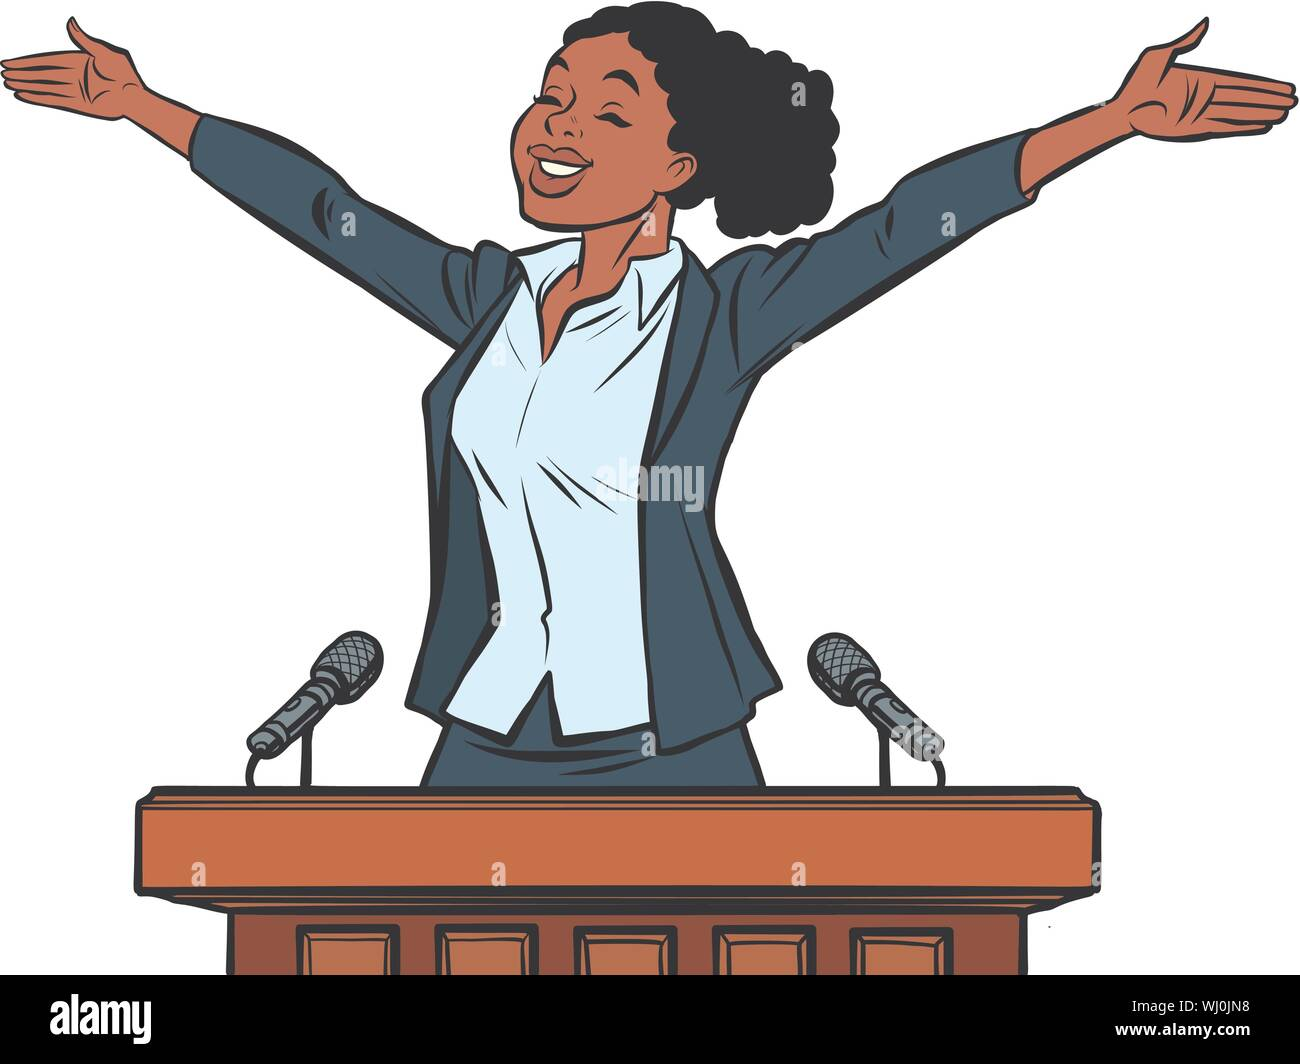 Page 2 Audience Public Speaker Cartoon High Resolution Stock Photography And Images Alamy